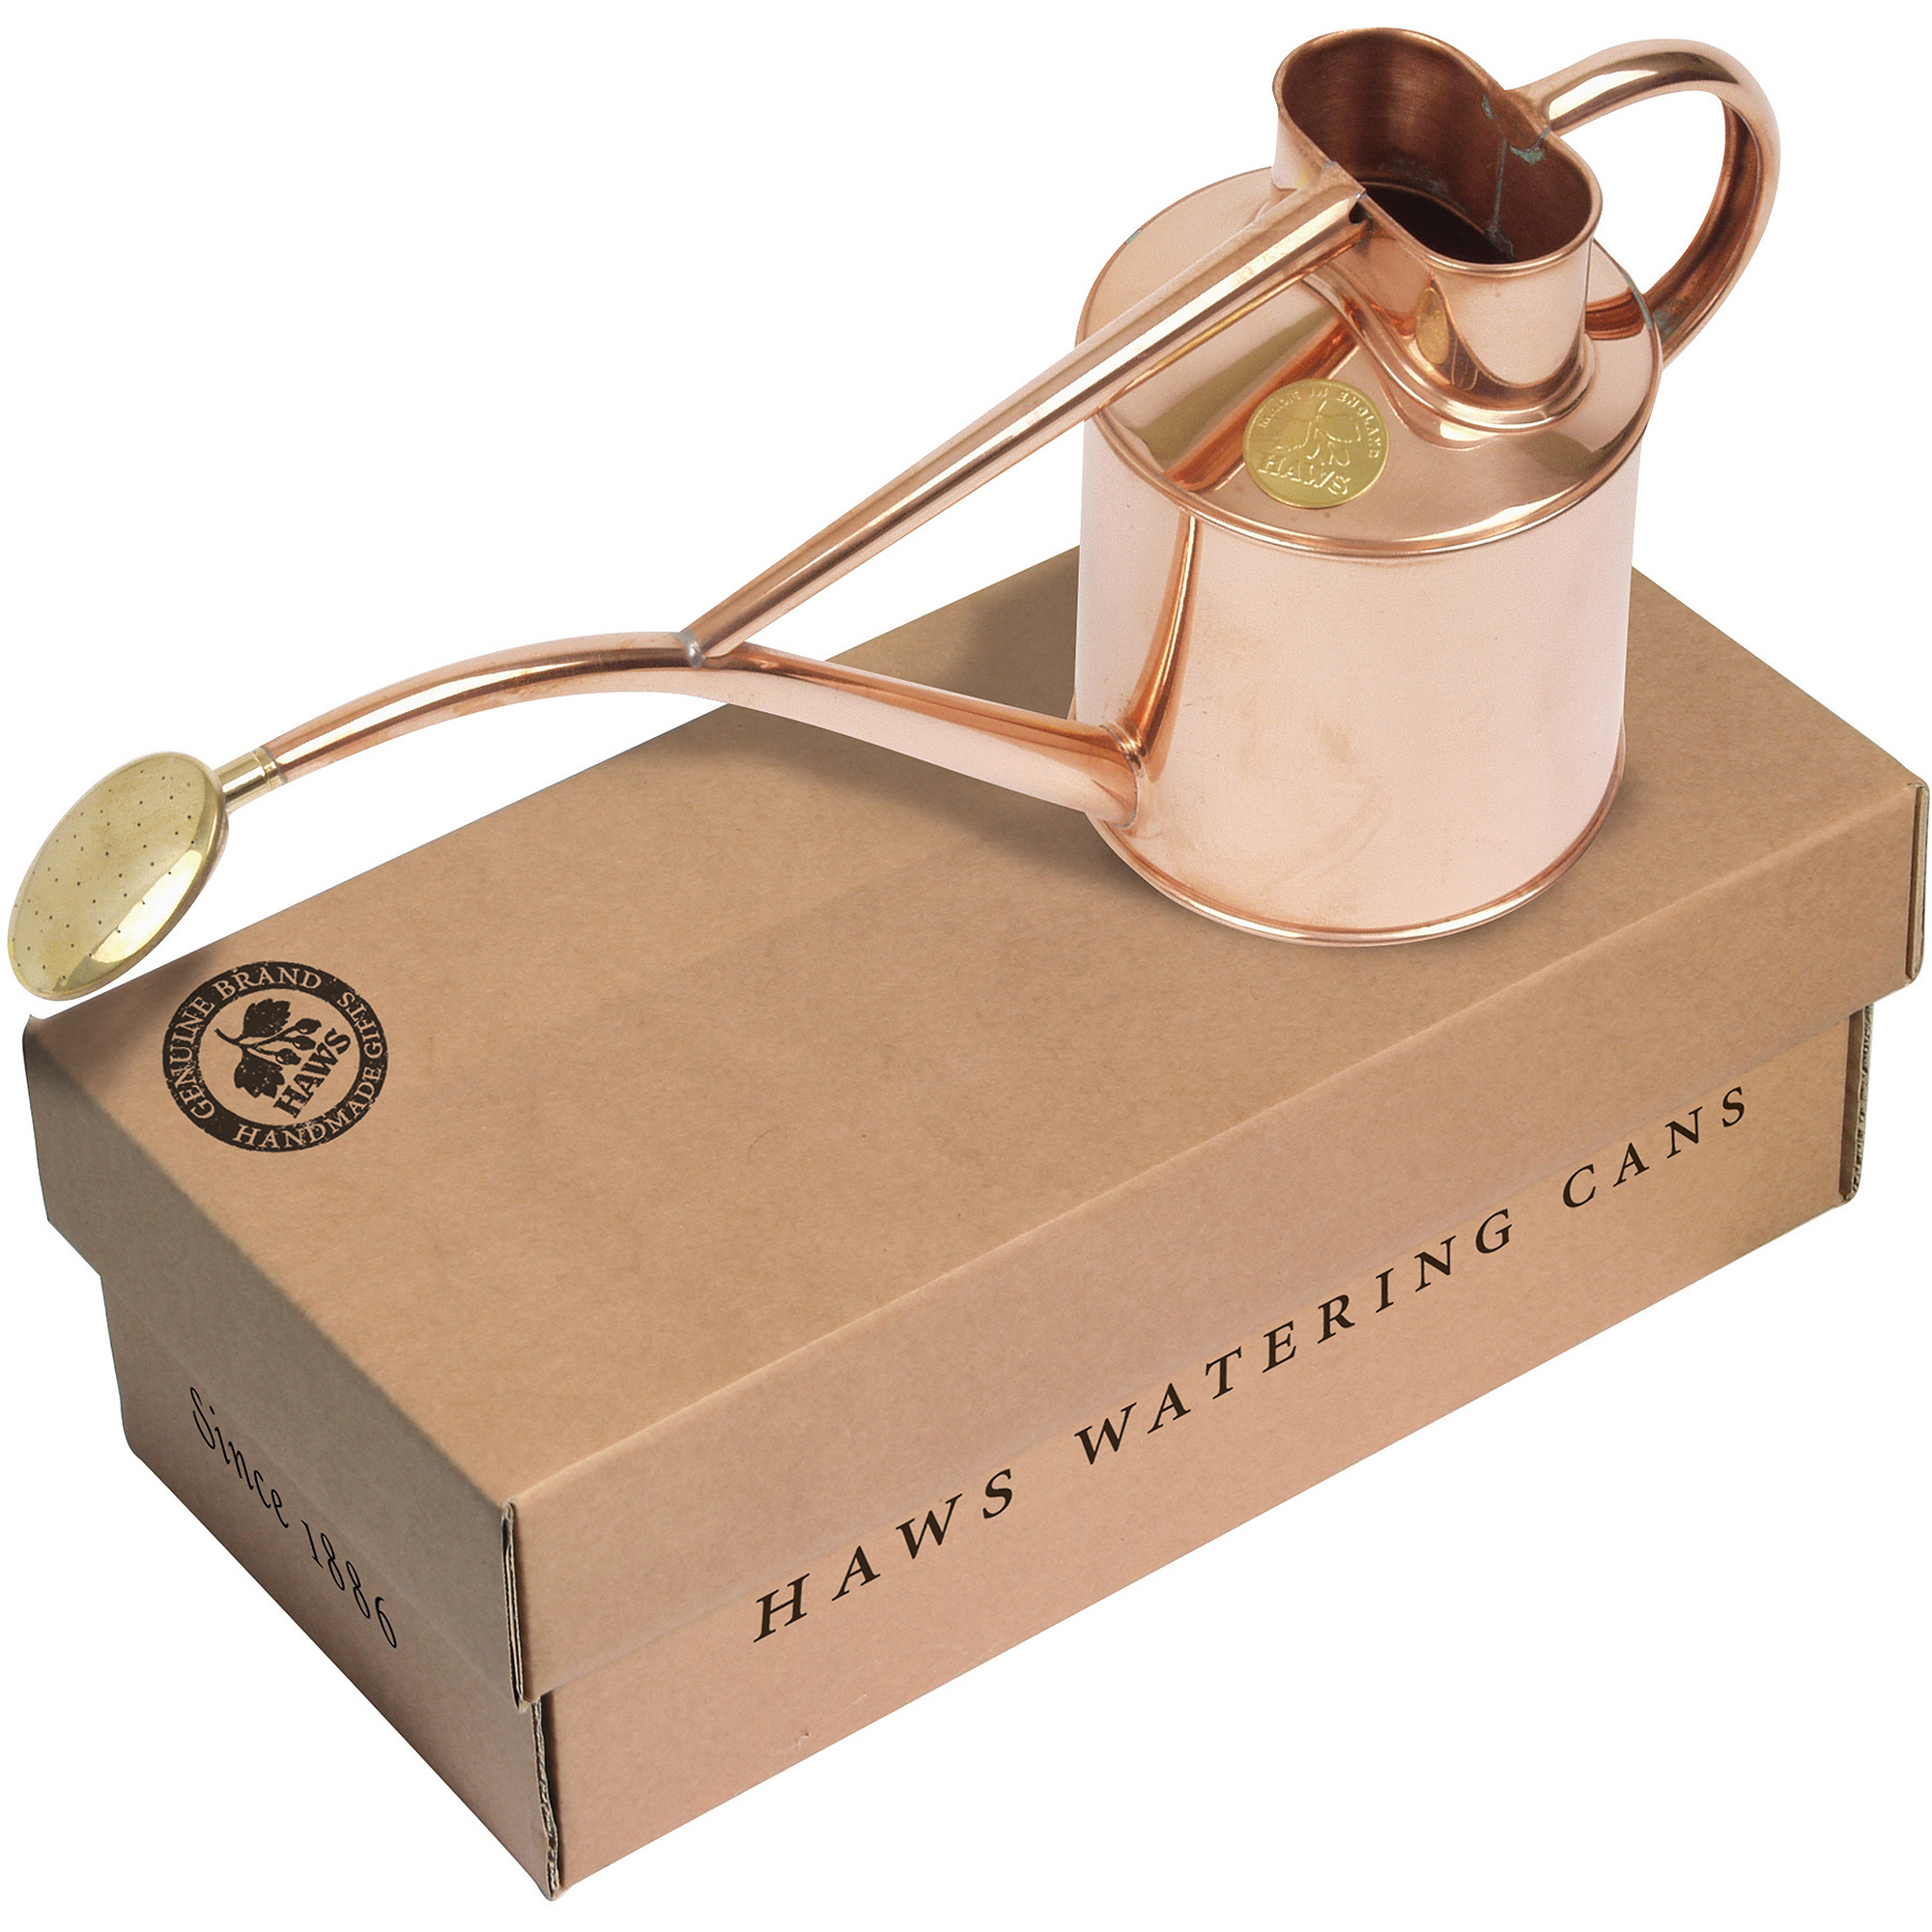 Haws Copp34 2-pint watering can with Haws Gift Box V181